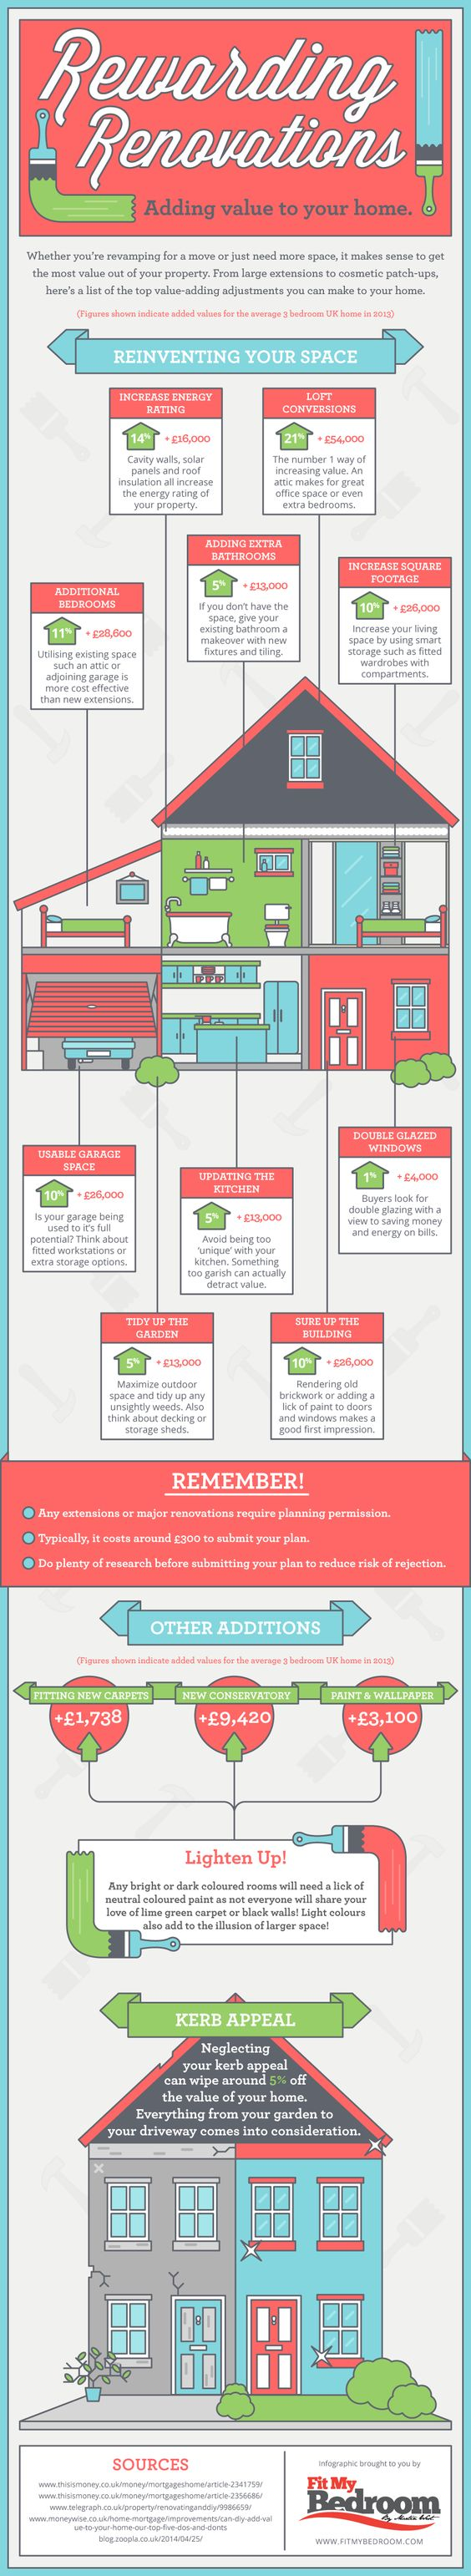 Rewarding Renovations Adding Value to Your Home infographic